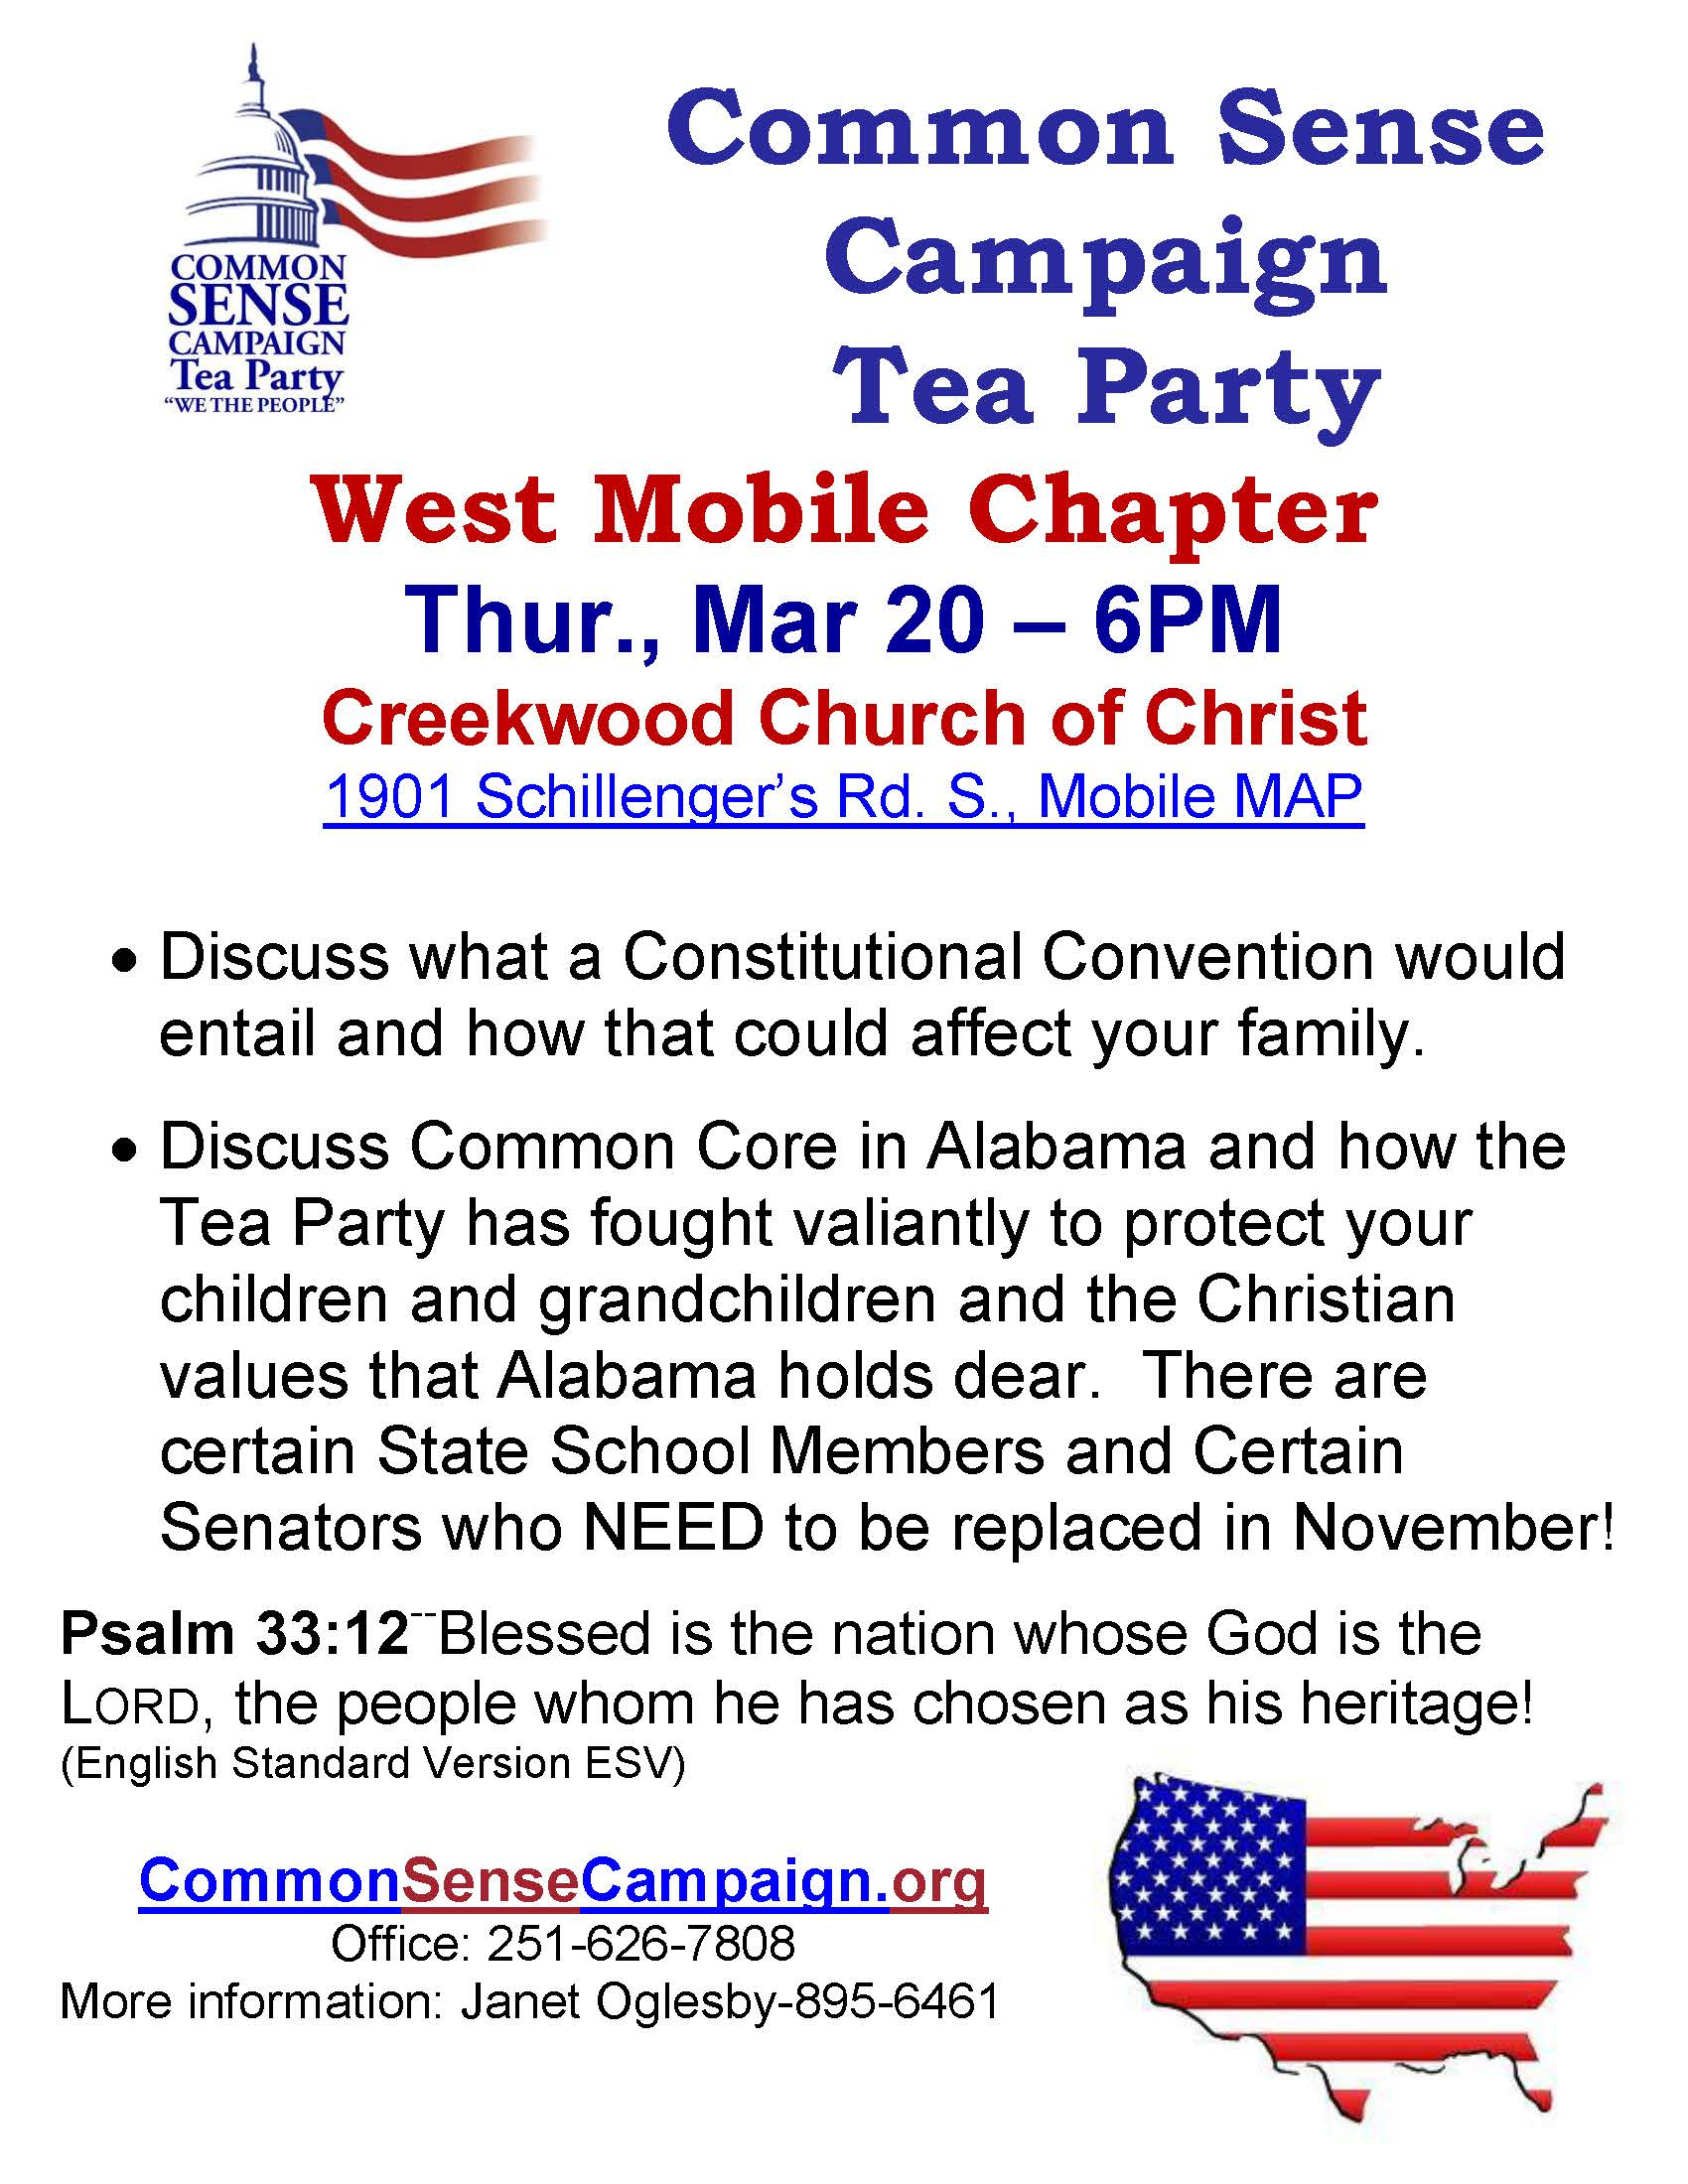 West Mobile-Tea Party Meeting-3-20-14